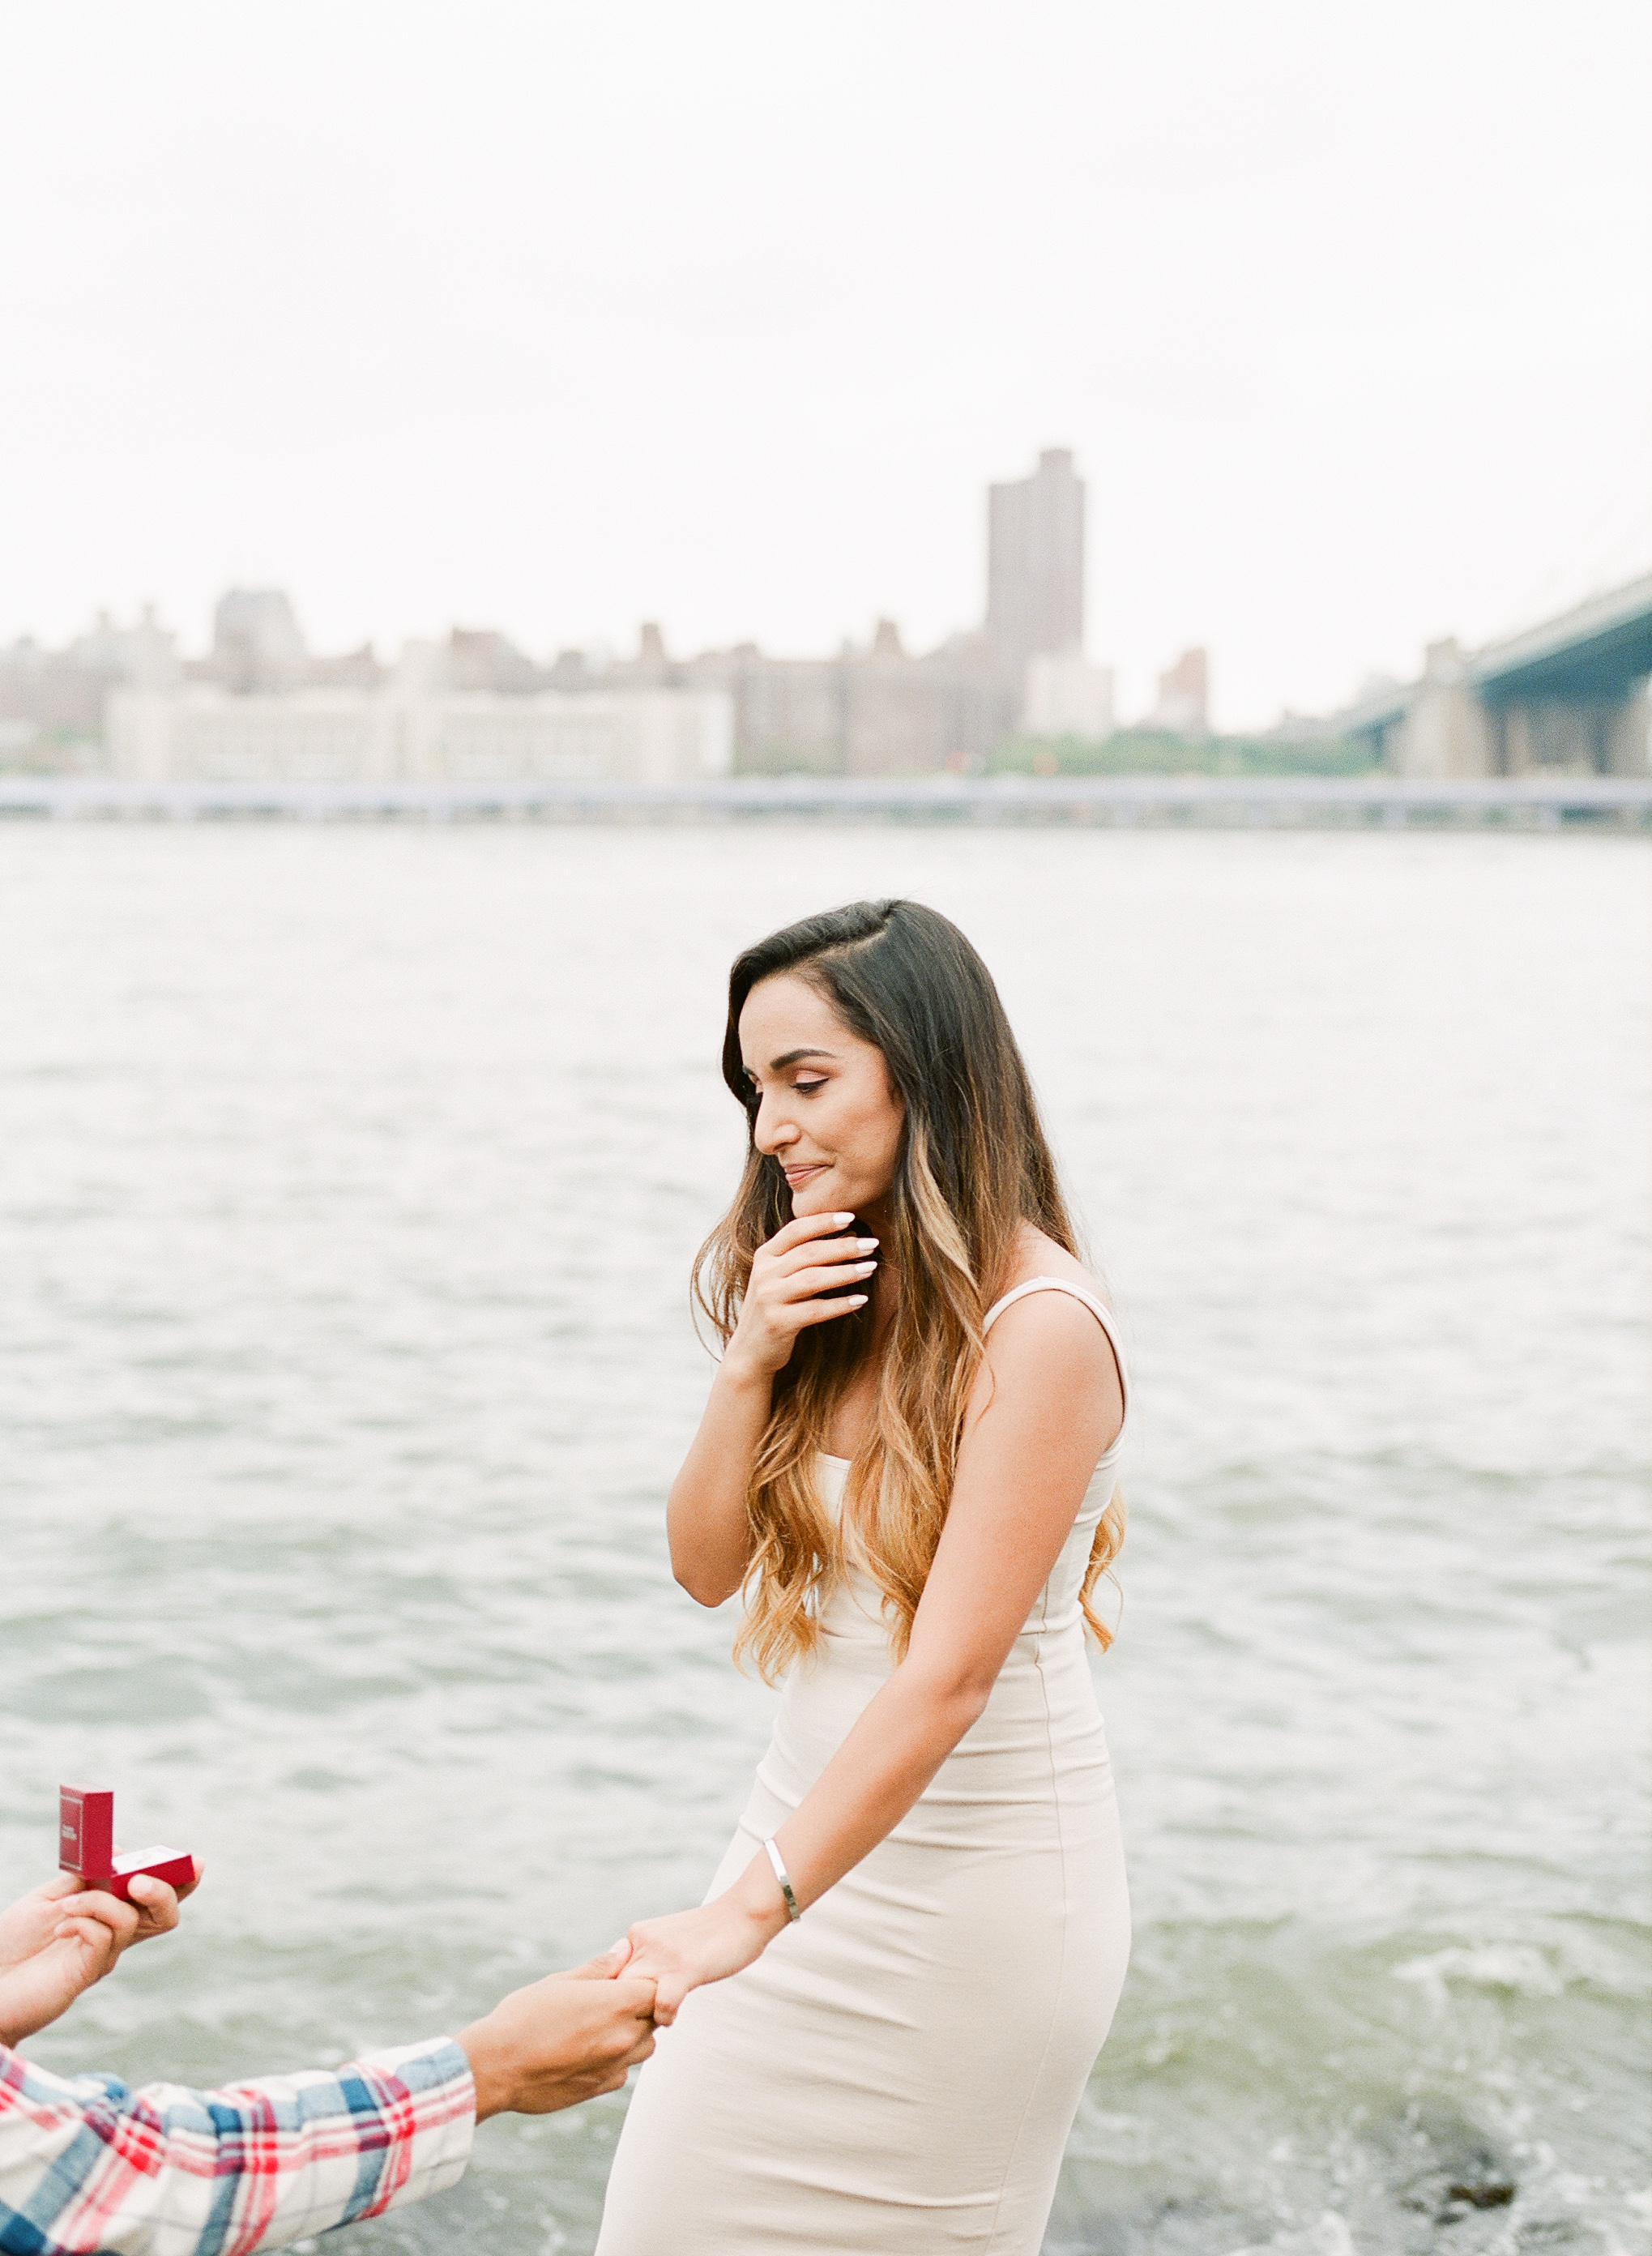 Dumbo Brooklyn Proposal - Sulove and Barisha-11.jpg